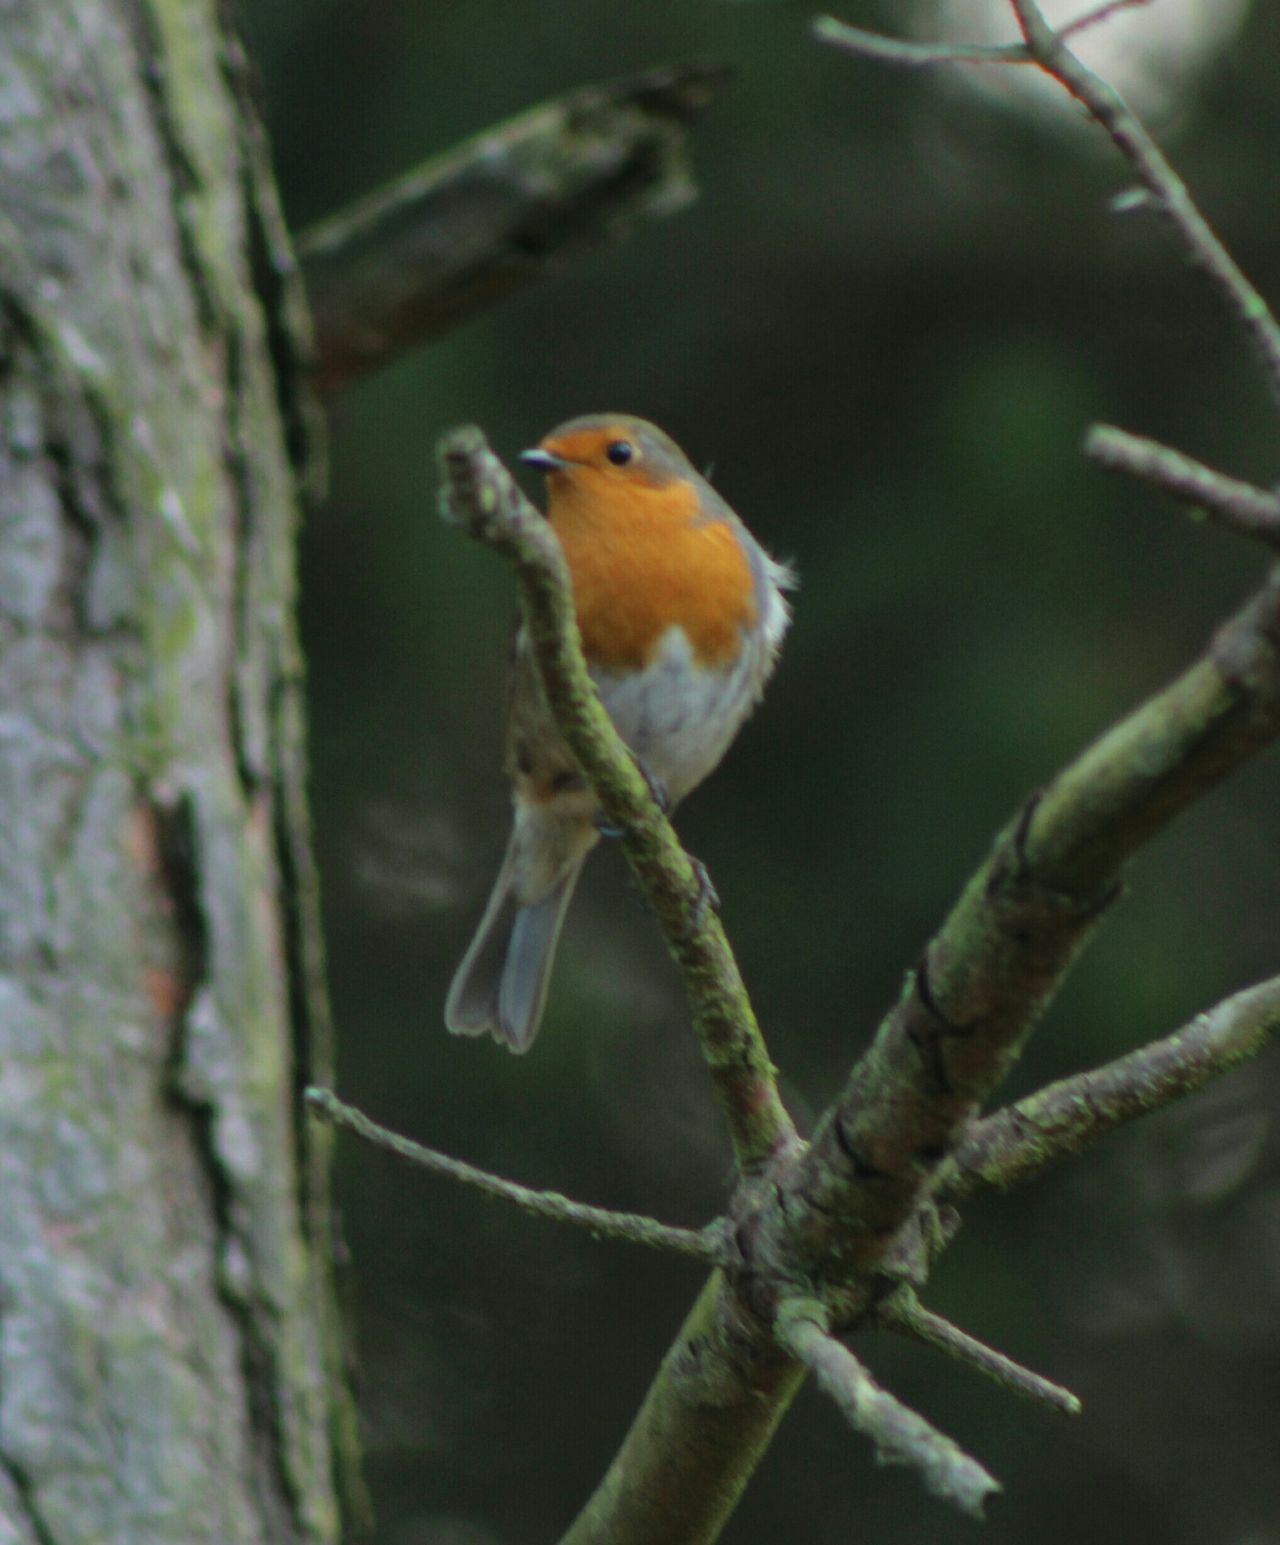 Robin Nature Derwent Reservoir Birdwatching Birds Birds_collection Bird Photography